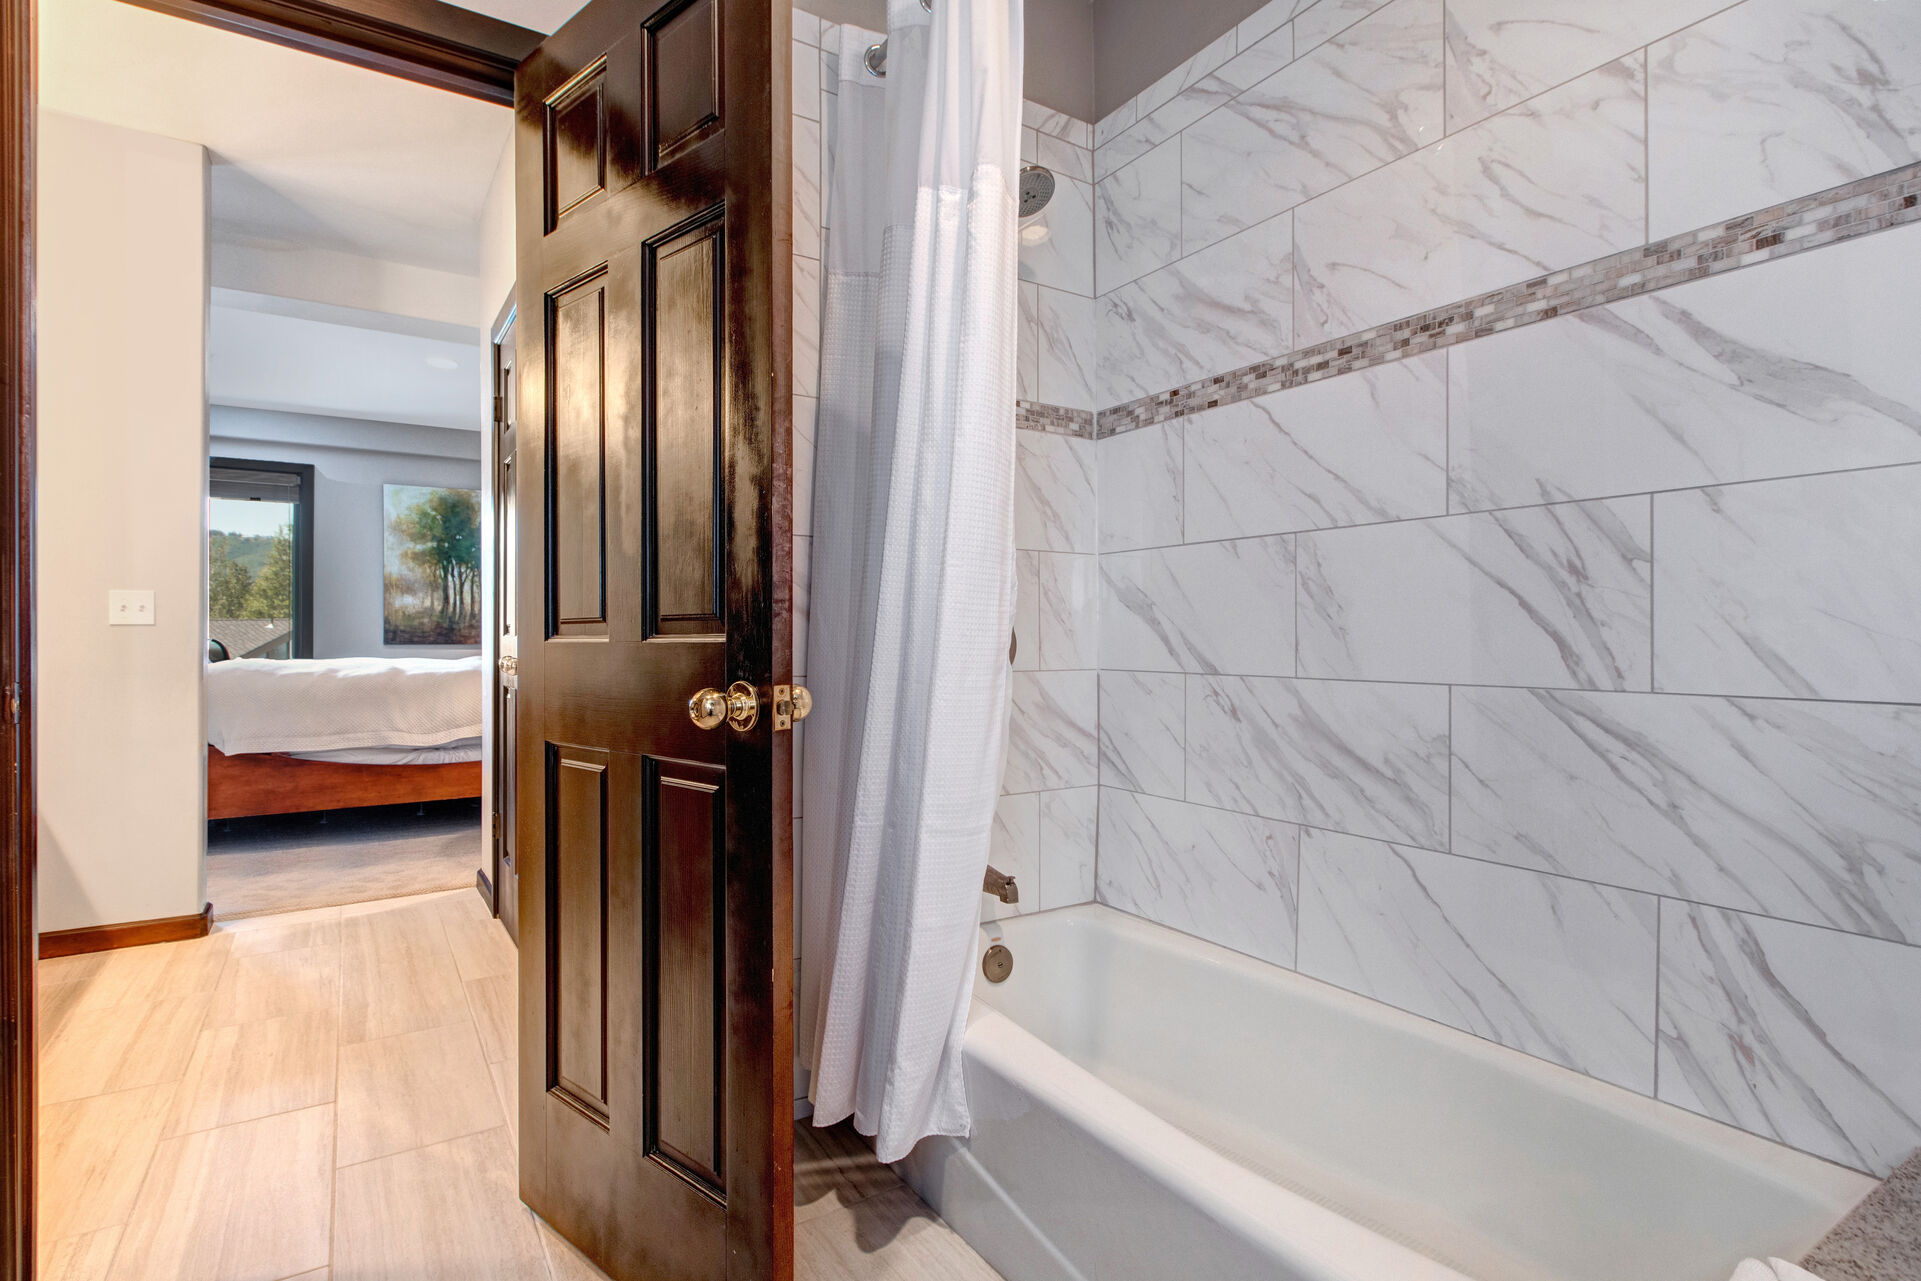 Master Bath 2 with Dual Stone Counter Sinks and a Separate Tub/Shower